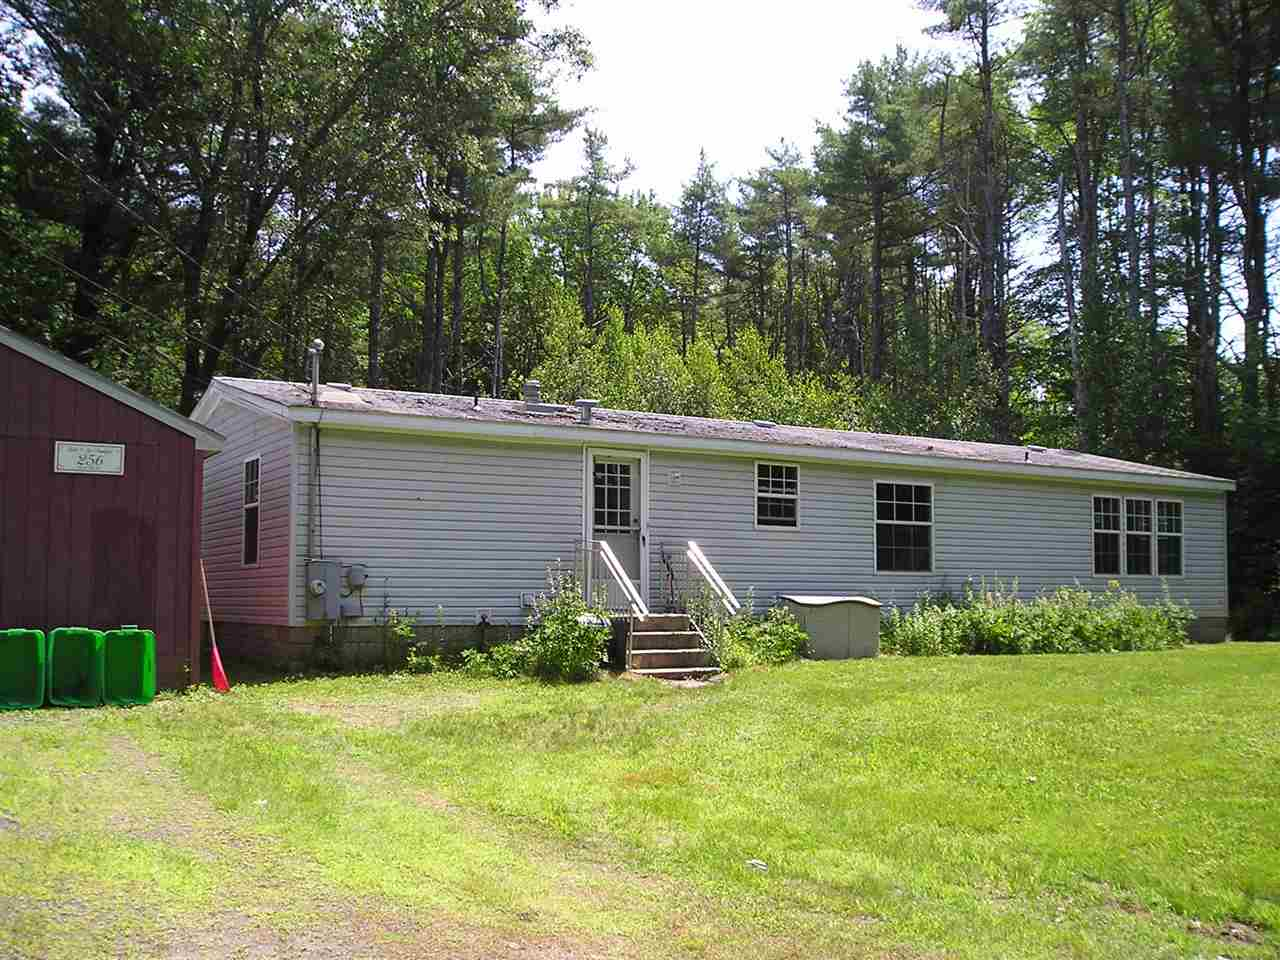 Mobile Home for Sale in ME   Verani Realty